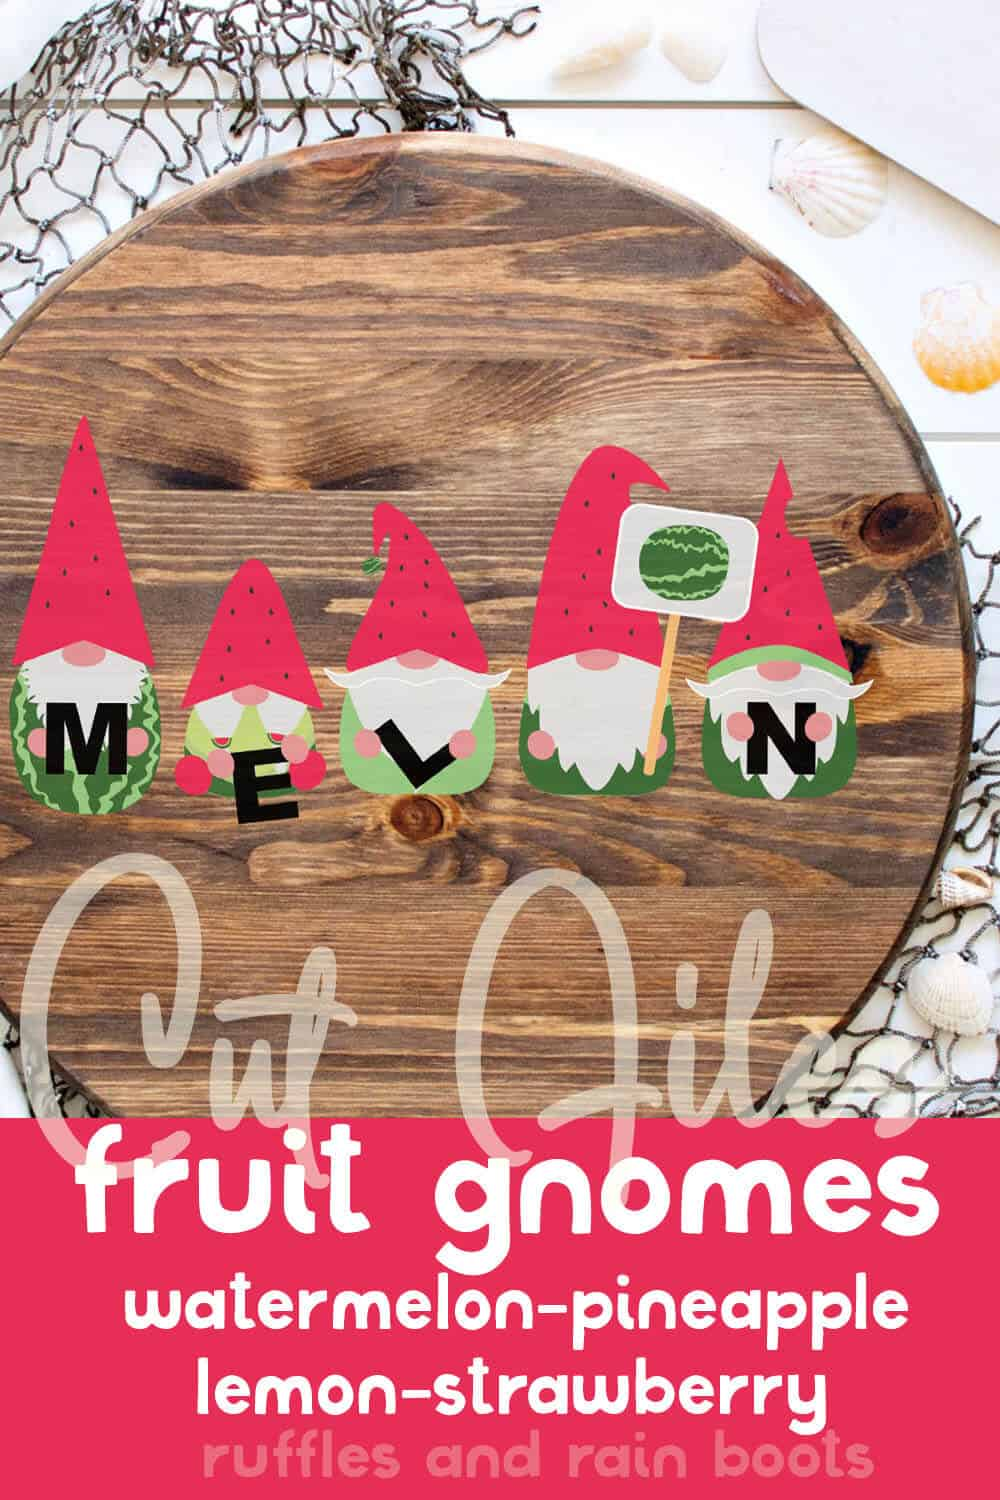 watermelon gnome svg set on a round wall sign with text which reads cut files fruit gnomes watermelon pineapple lemon strawberry